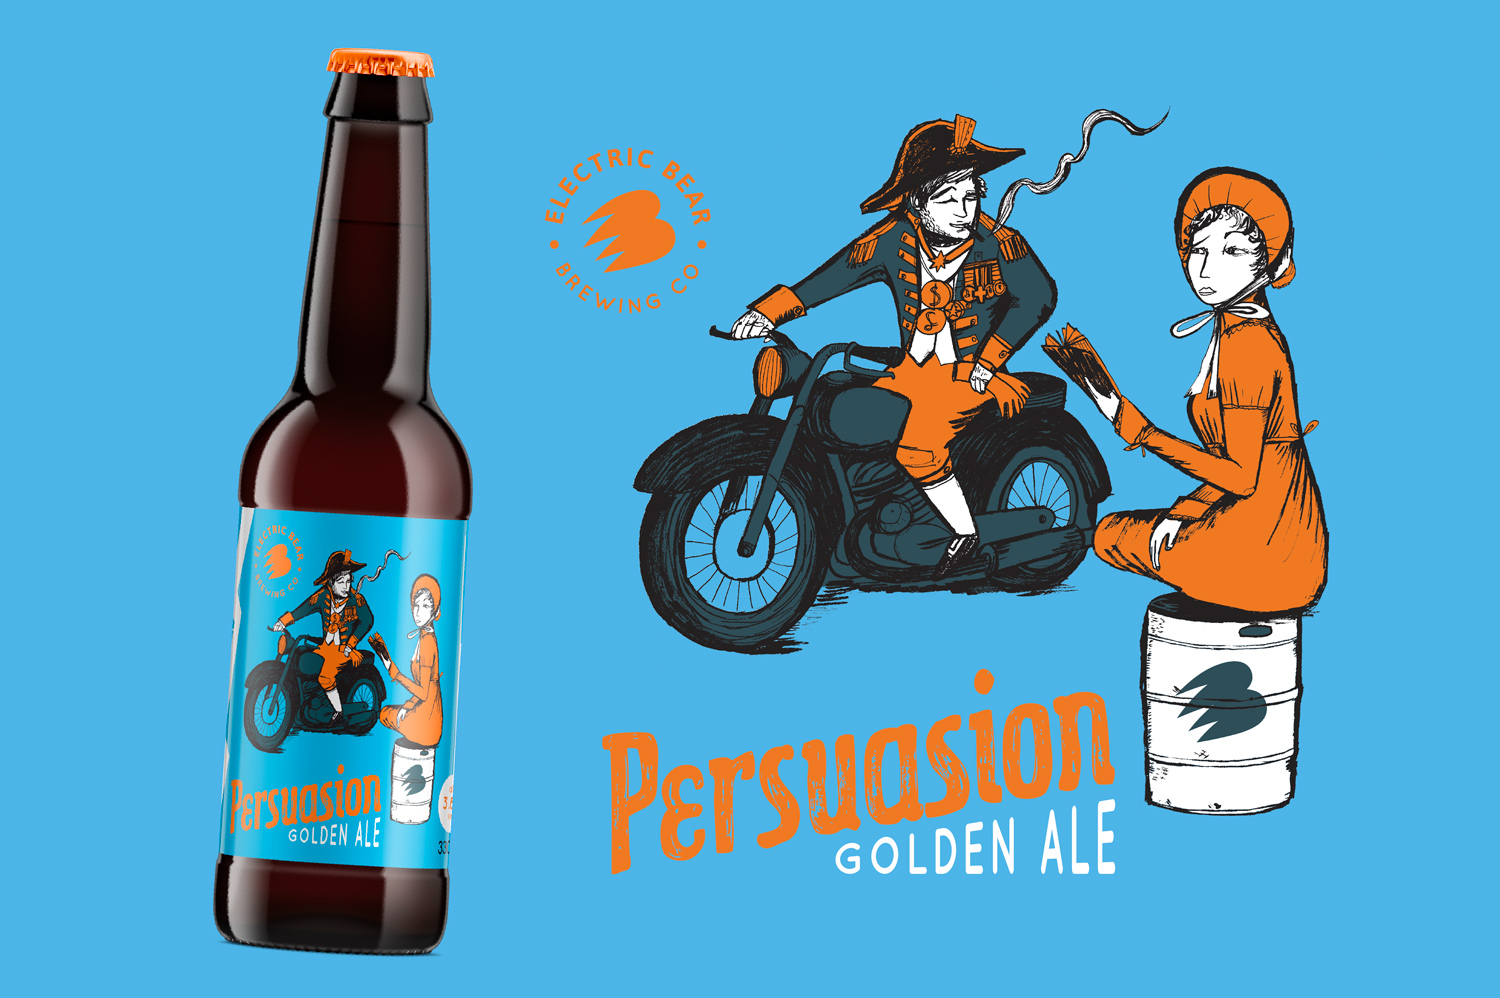 Persuasion Ale Electric Bear Brewing, Electric Bear Brewing Beer label illustration